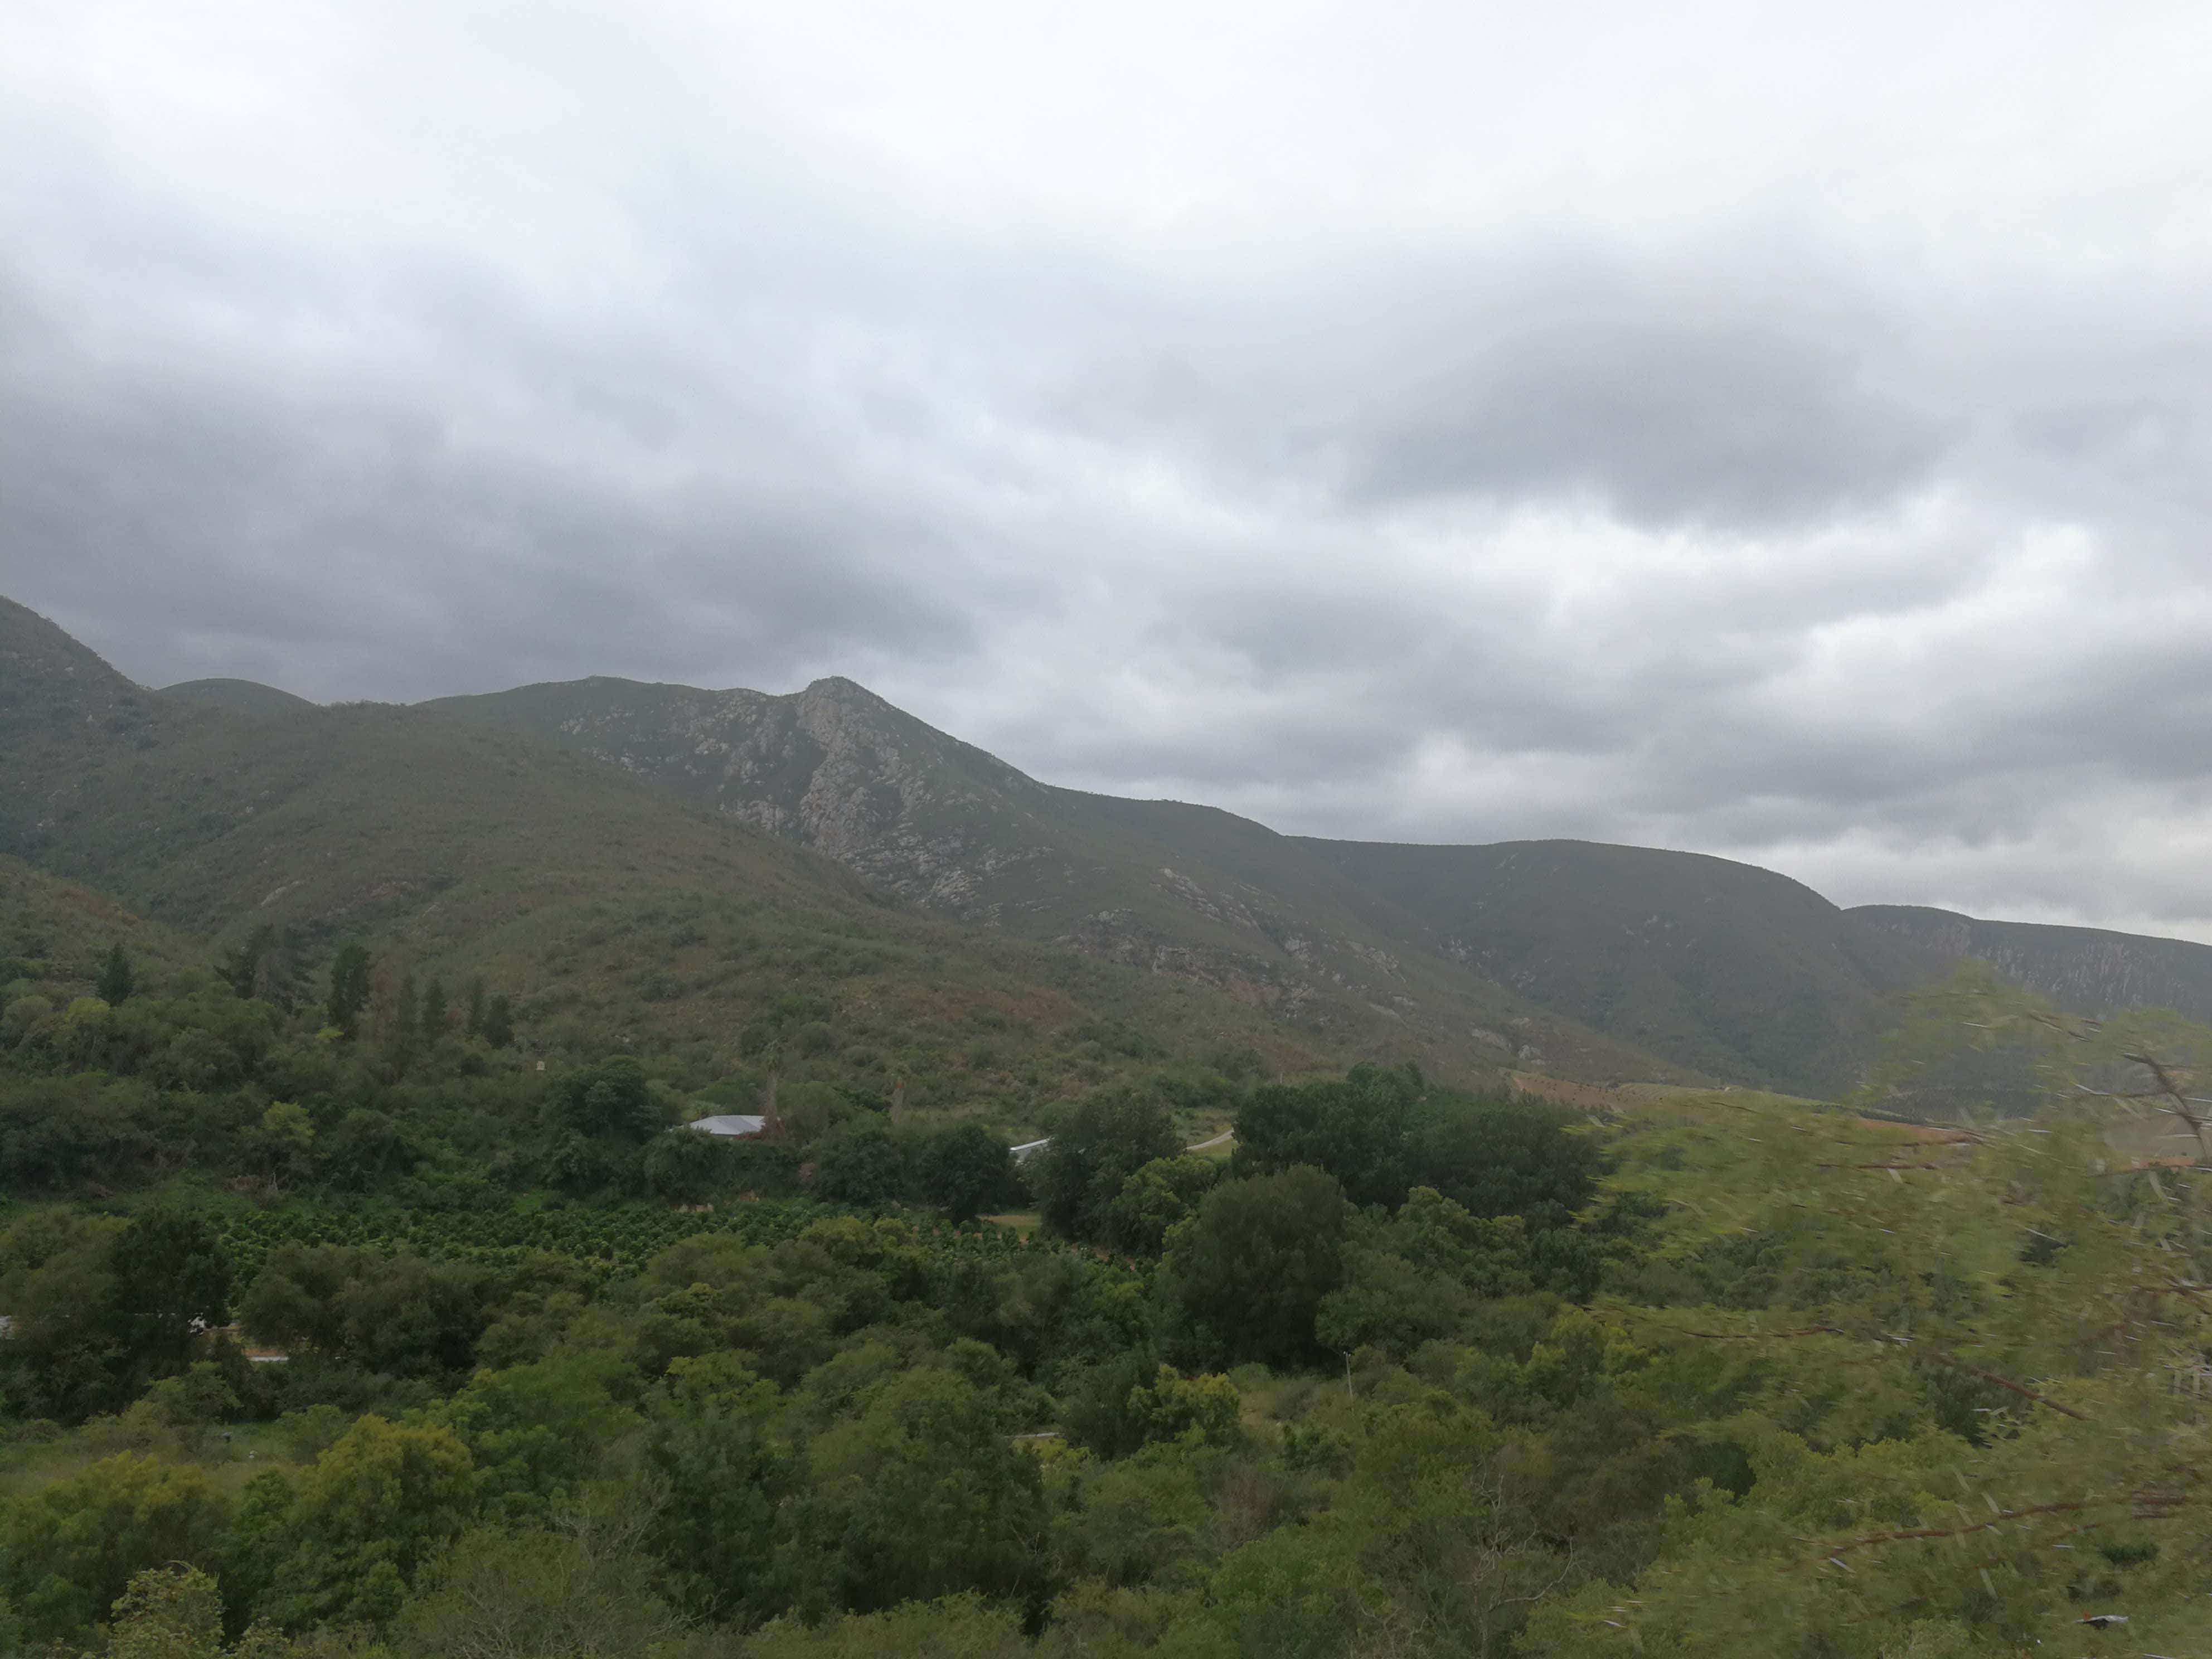 6 facts about Baviaanskloof you should know